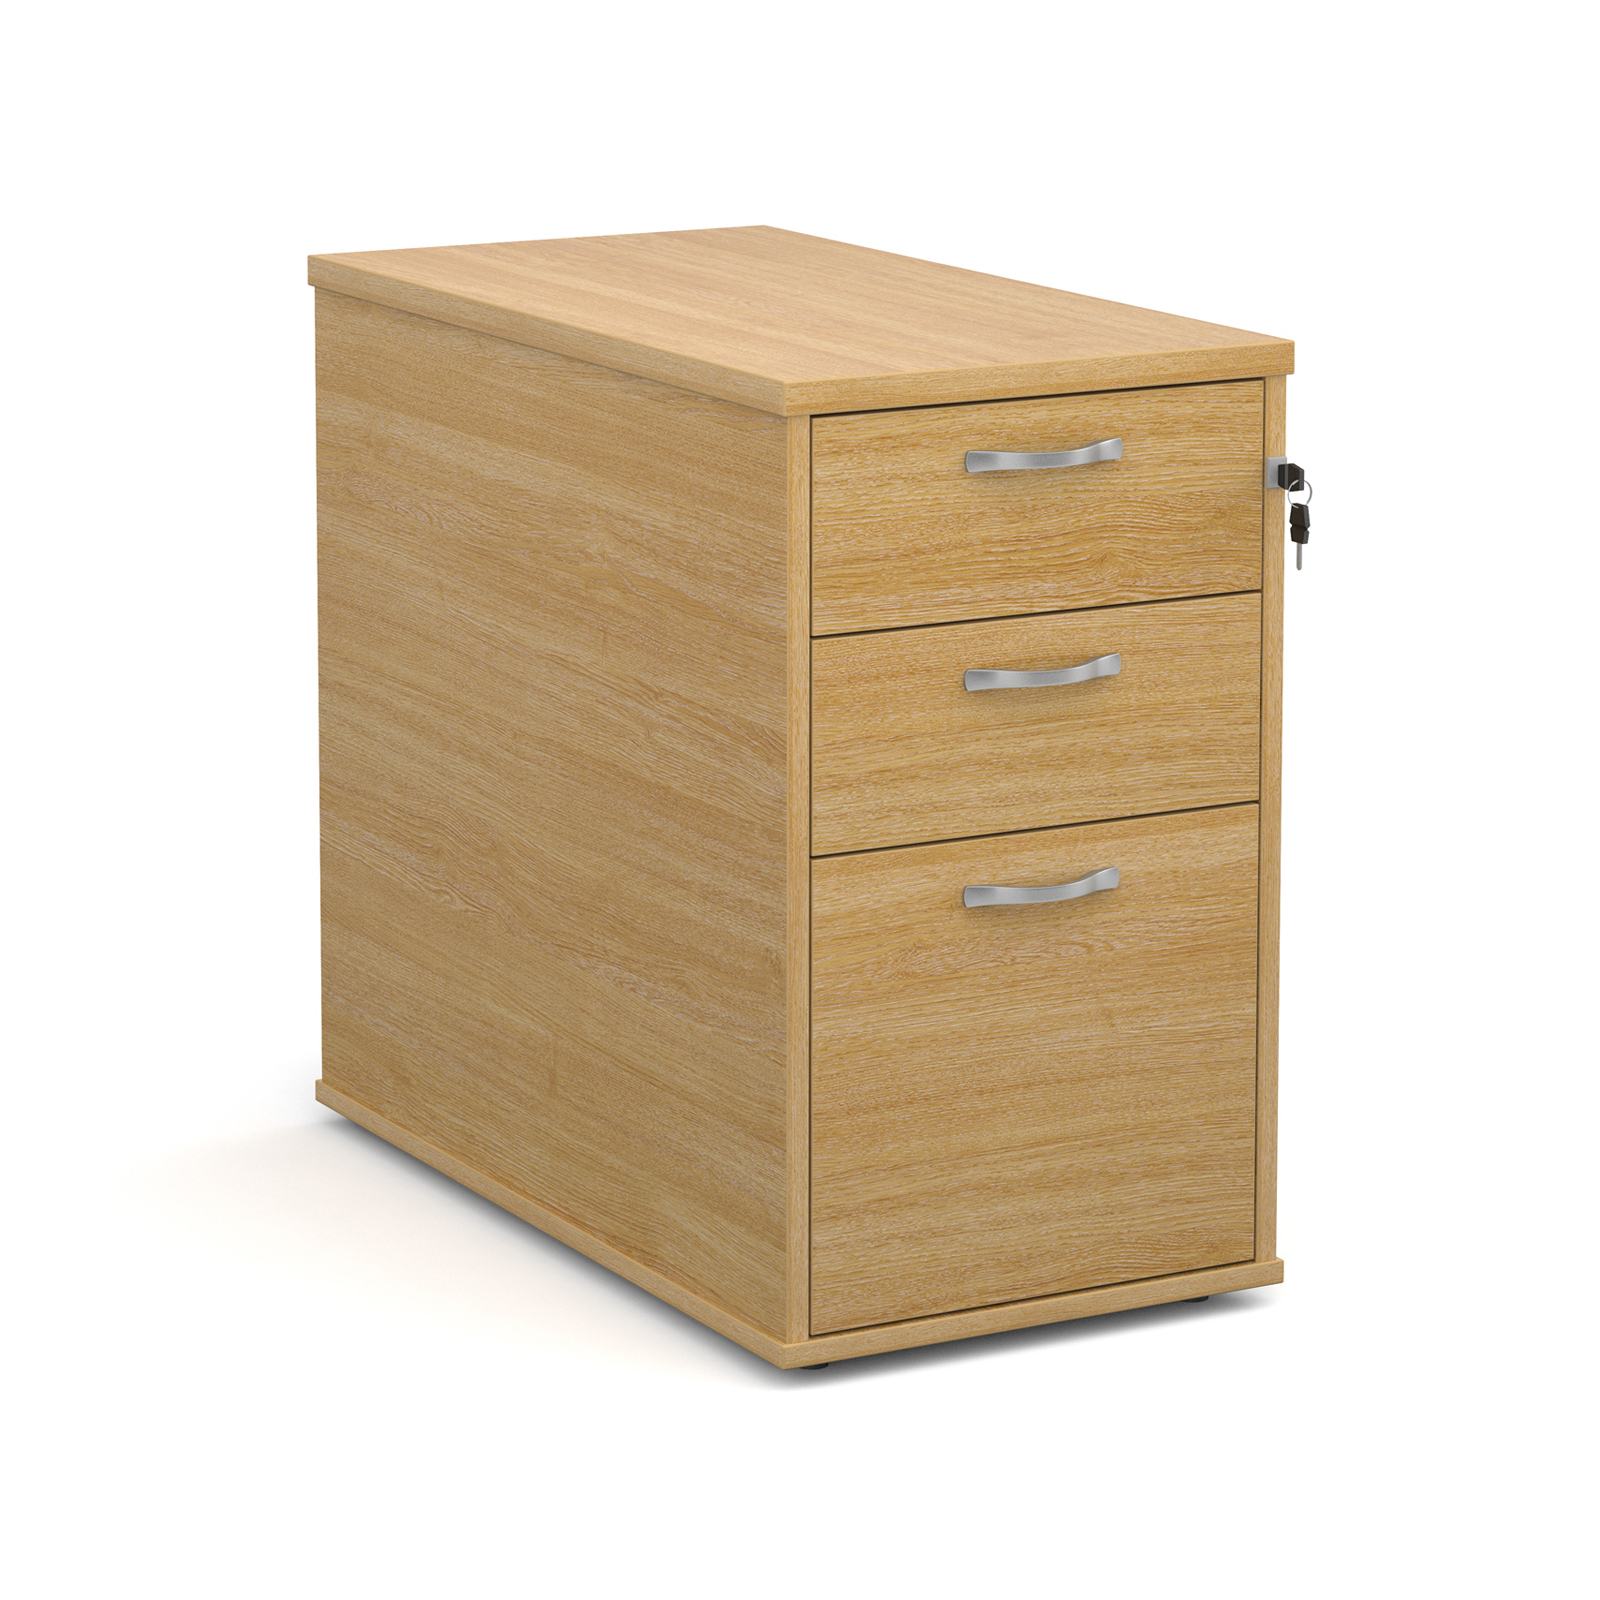 Desk high 3 drawer pedestal with silver handles 800mm deep - oak